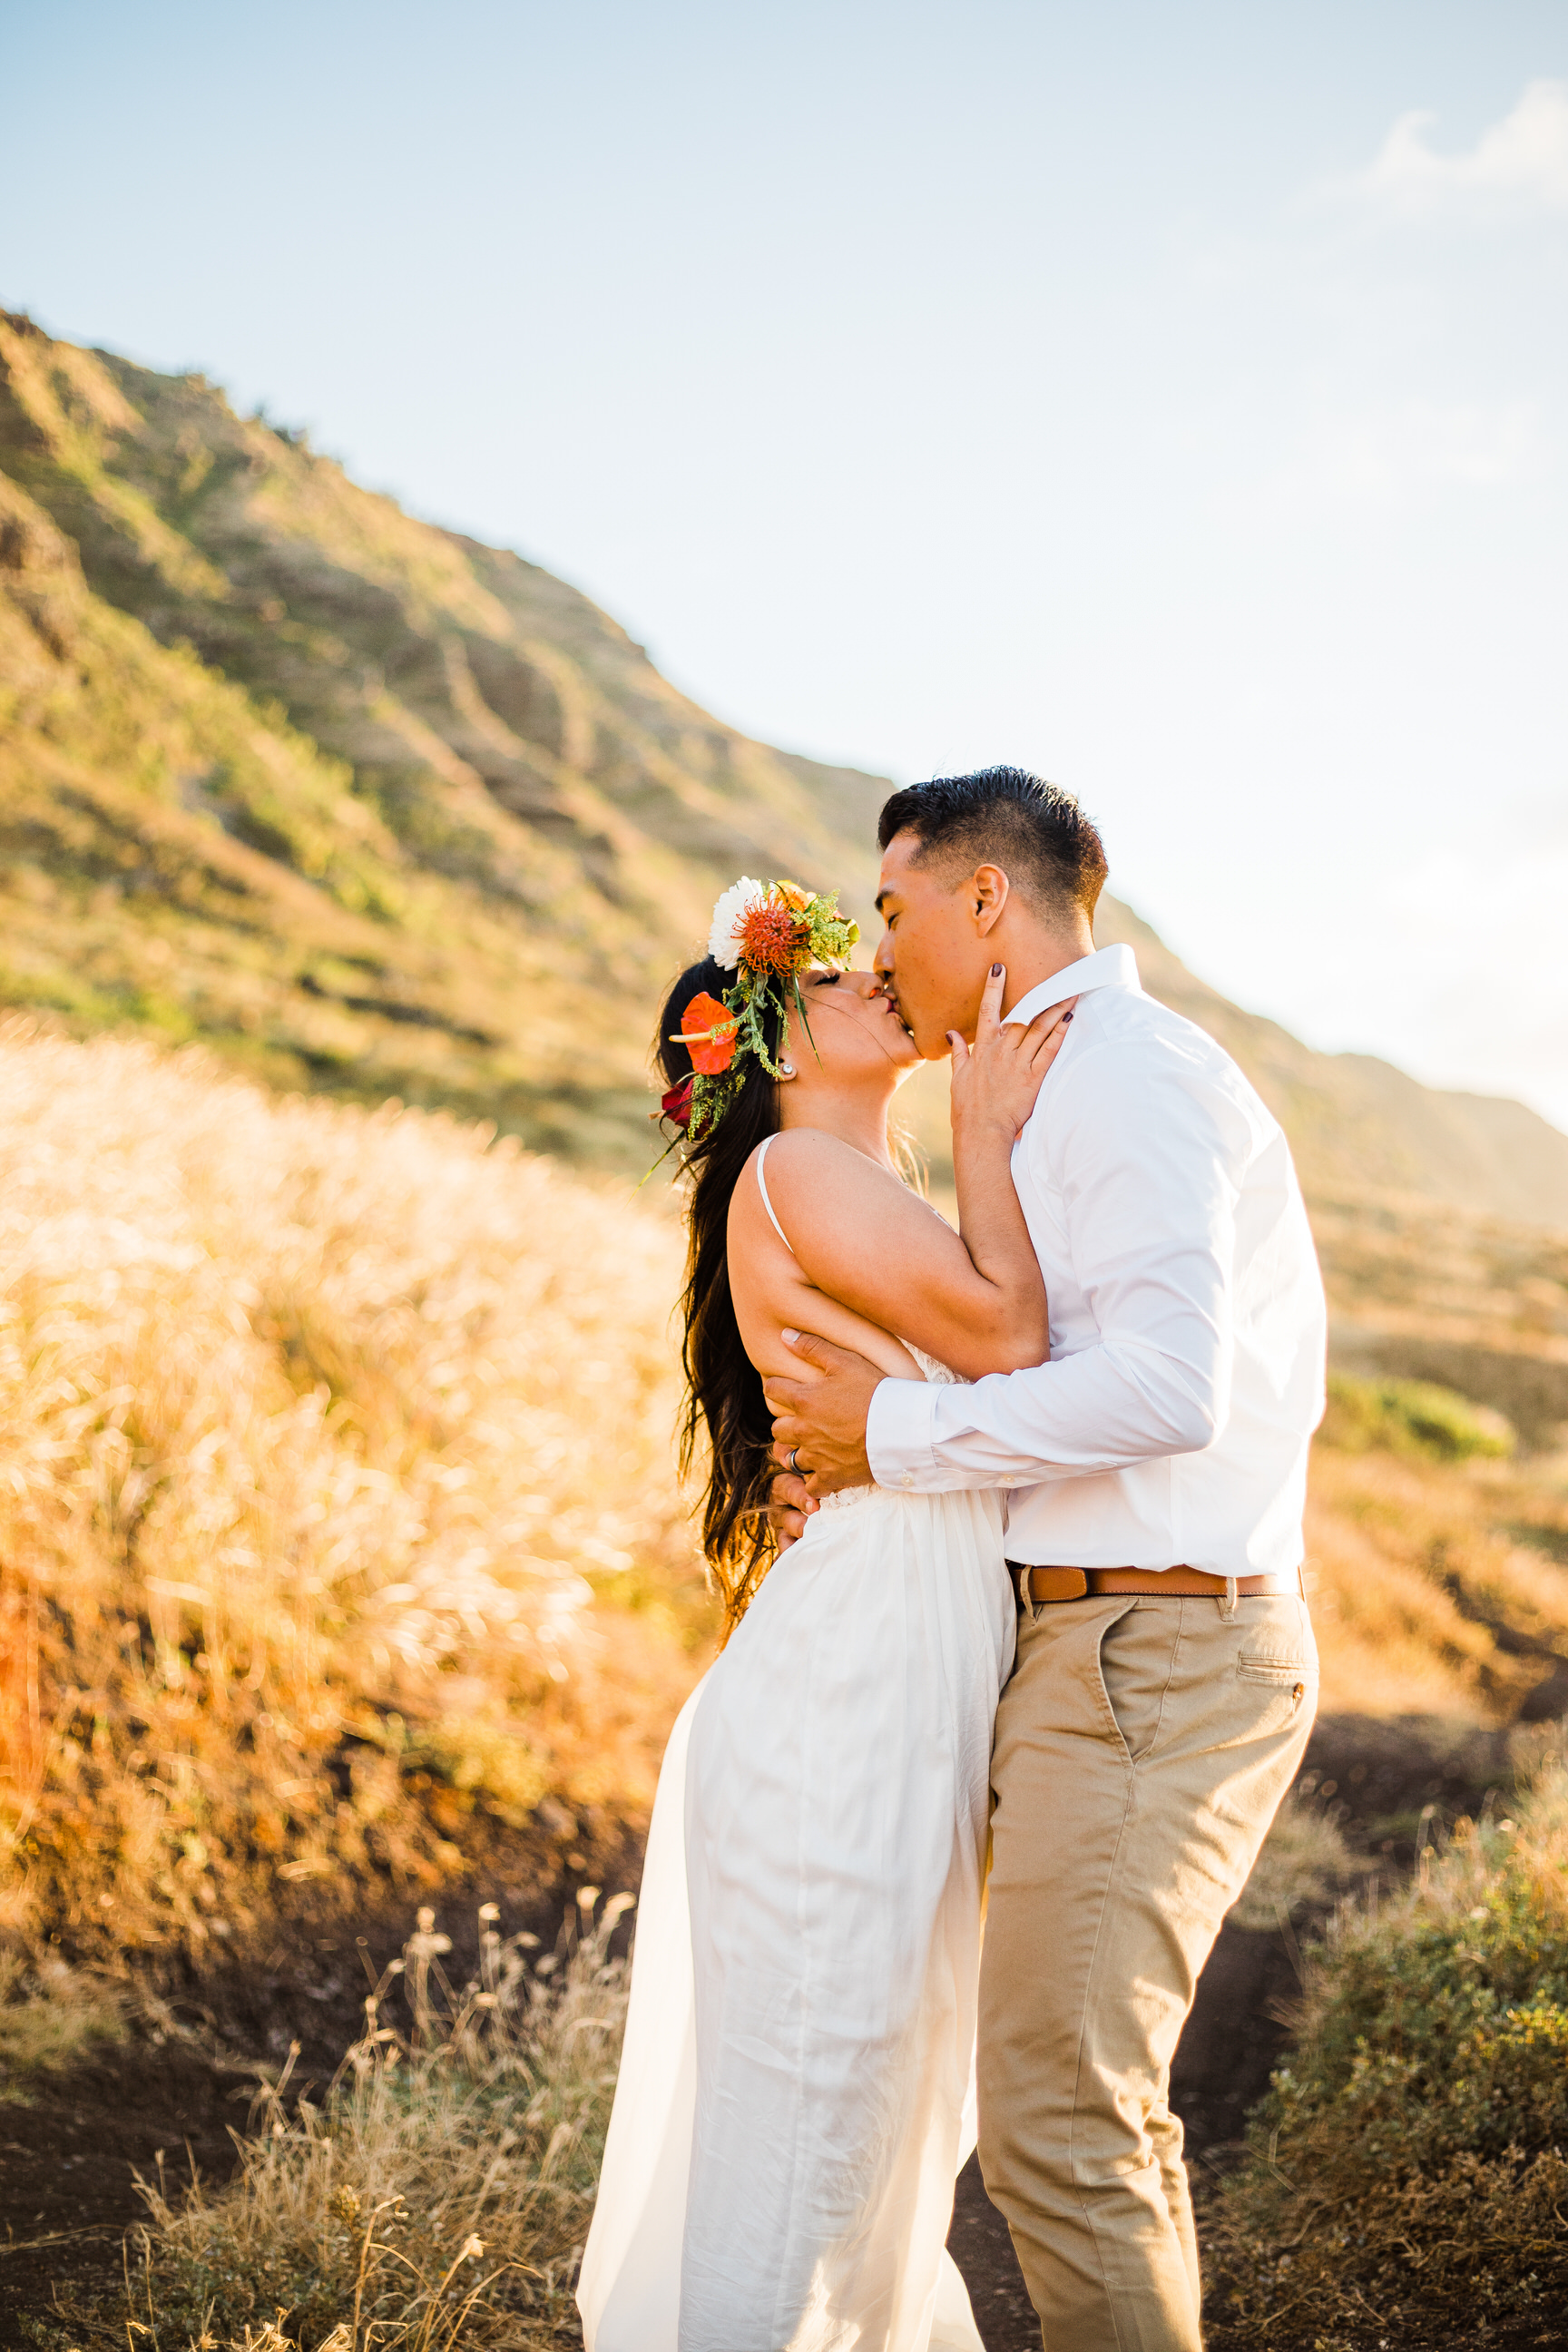 intimate-elopement-sunset-oahu-haku-16.jpg